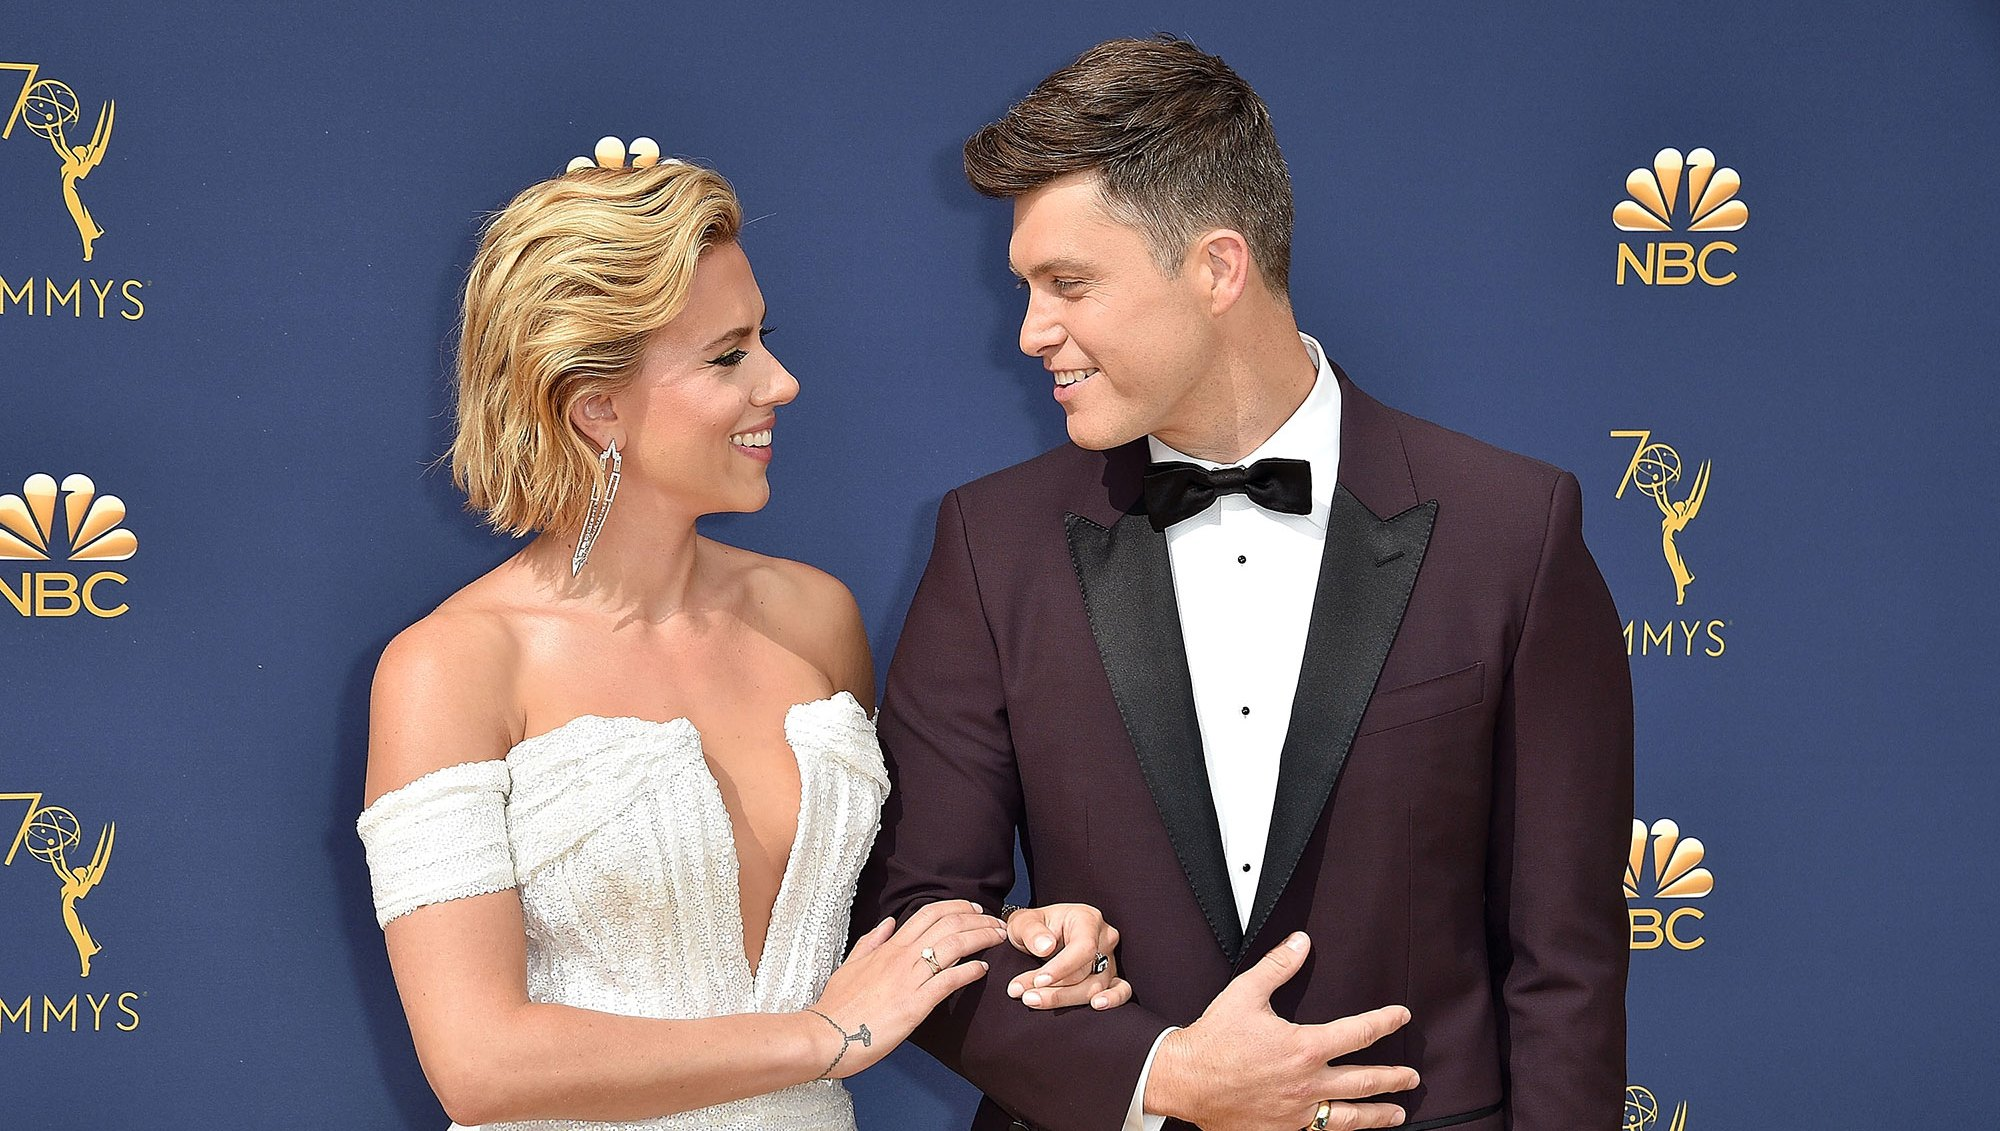 Colin Jost Who? Scarlett Johansson Jokes She's Dating Her Doorman